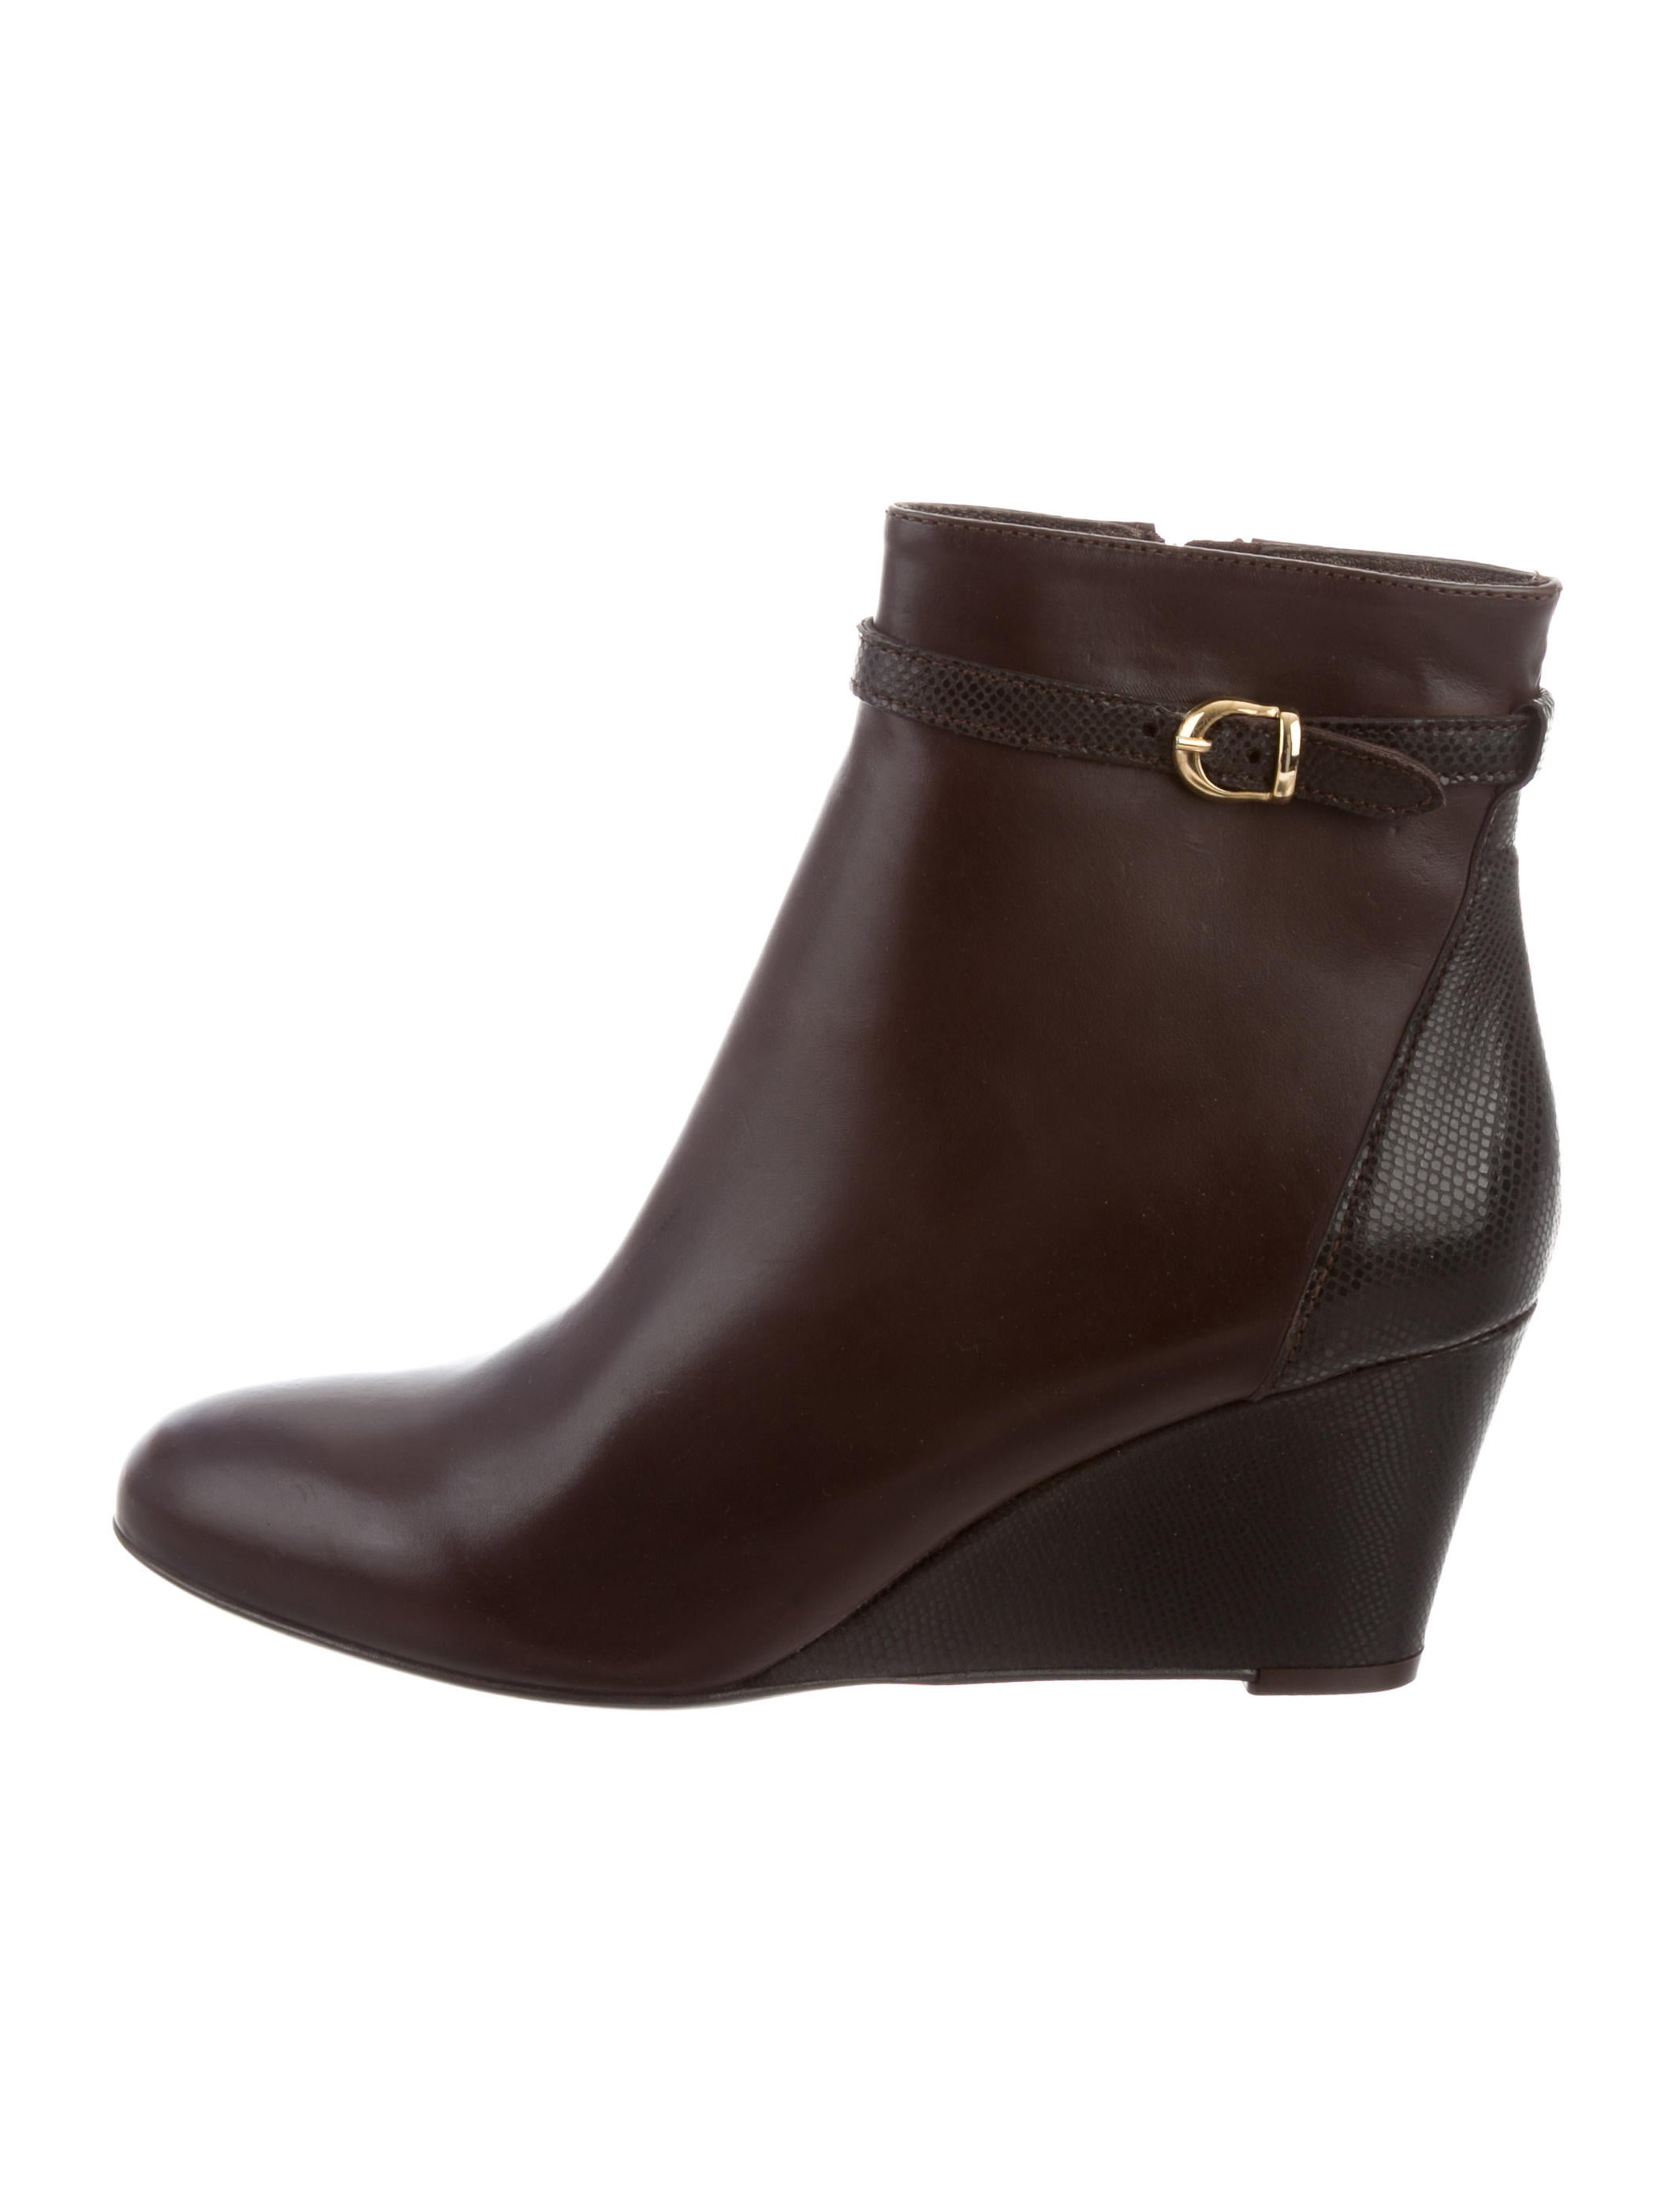 AGL Leather Wedge Ankle Boots w/ Tags